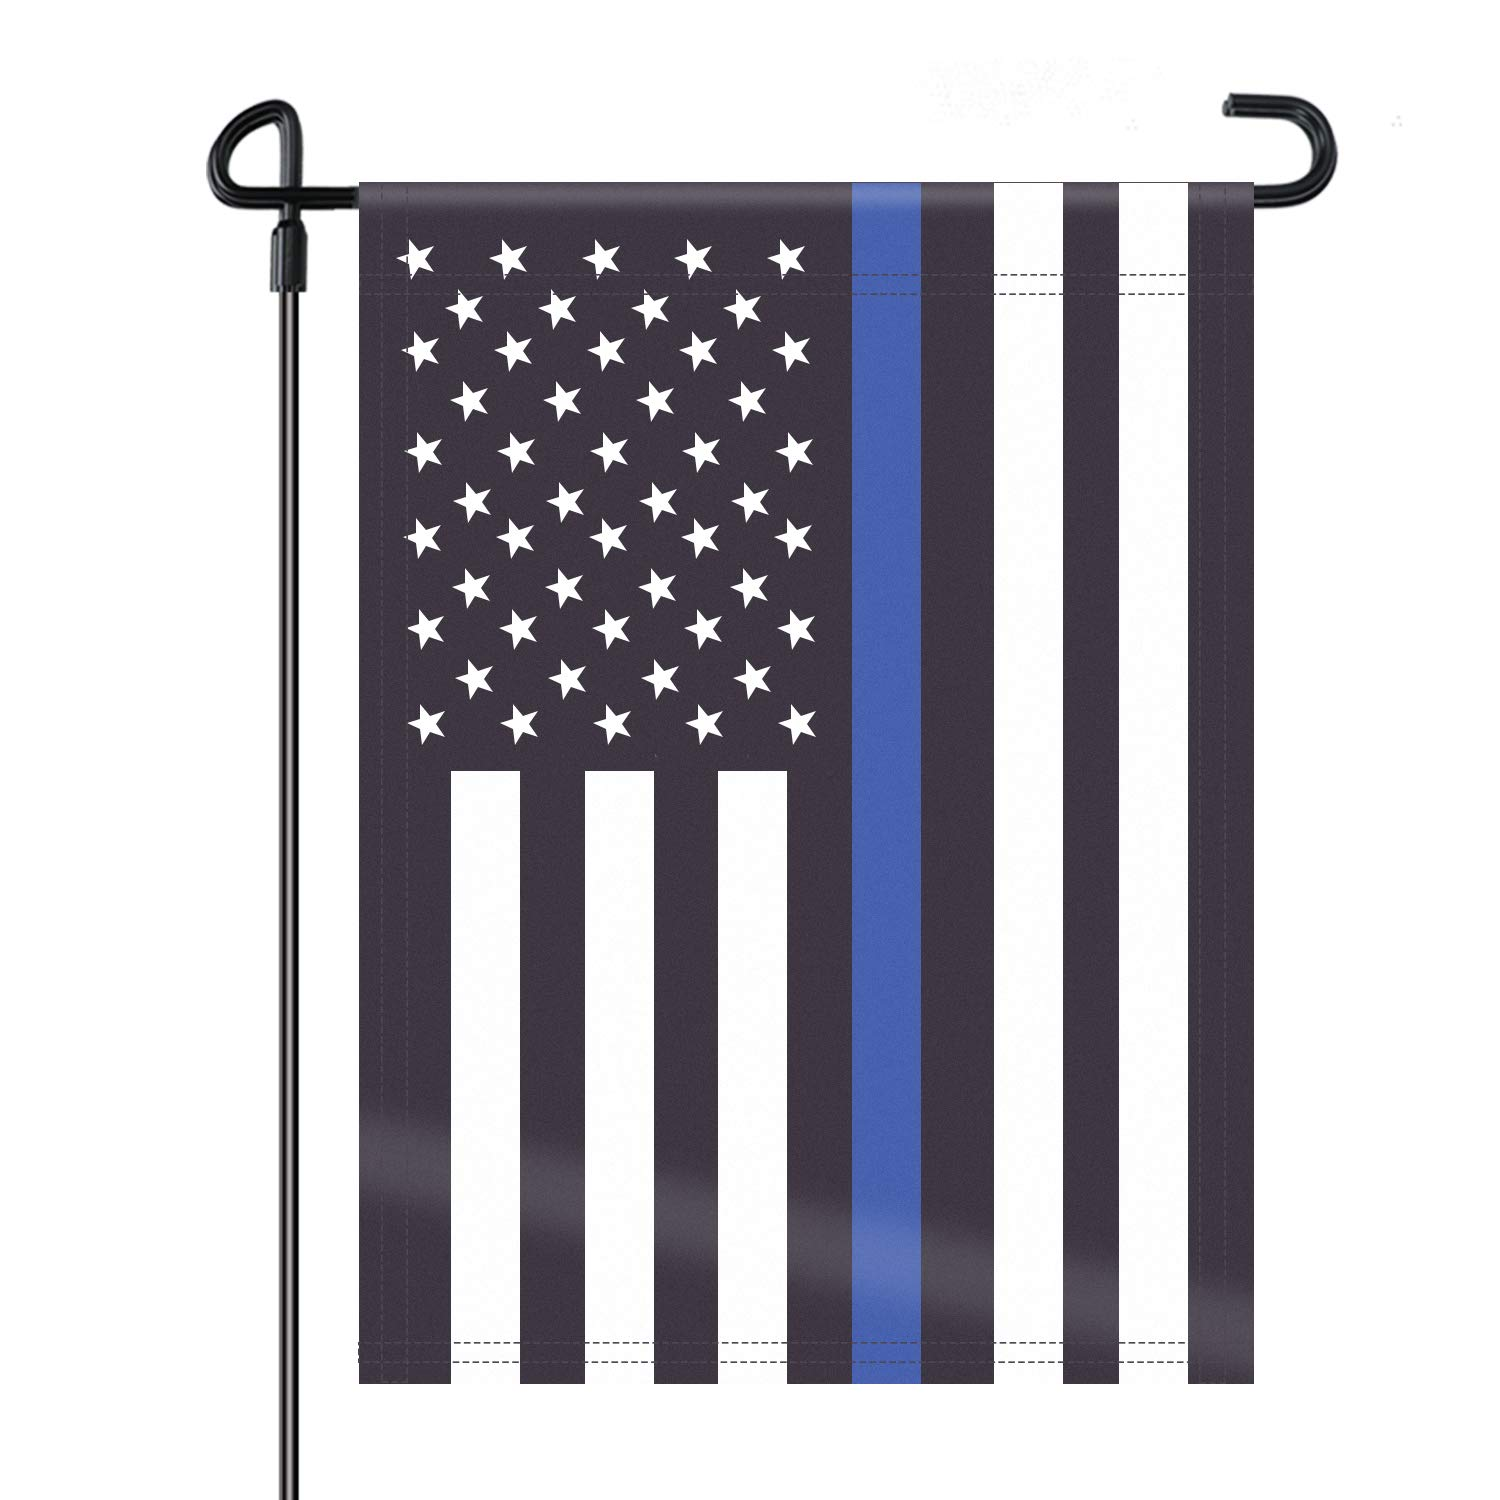 HOOSUN Double Sided Thin Blue Line American Police Garden Flag, USA United States Decorative Garden Flags - Weather Resistant & Double Sided - 12.5 x 18 Inch